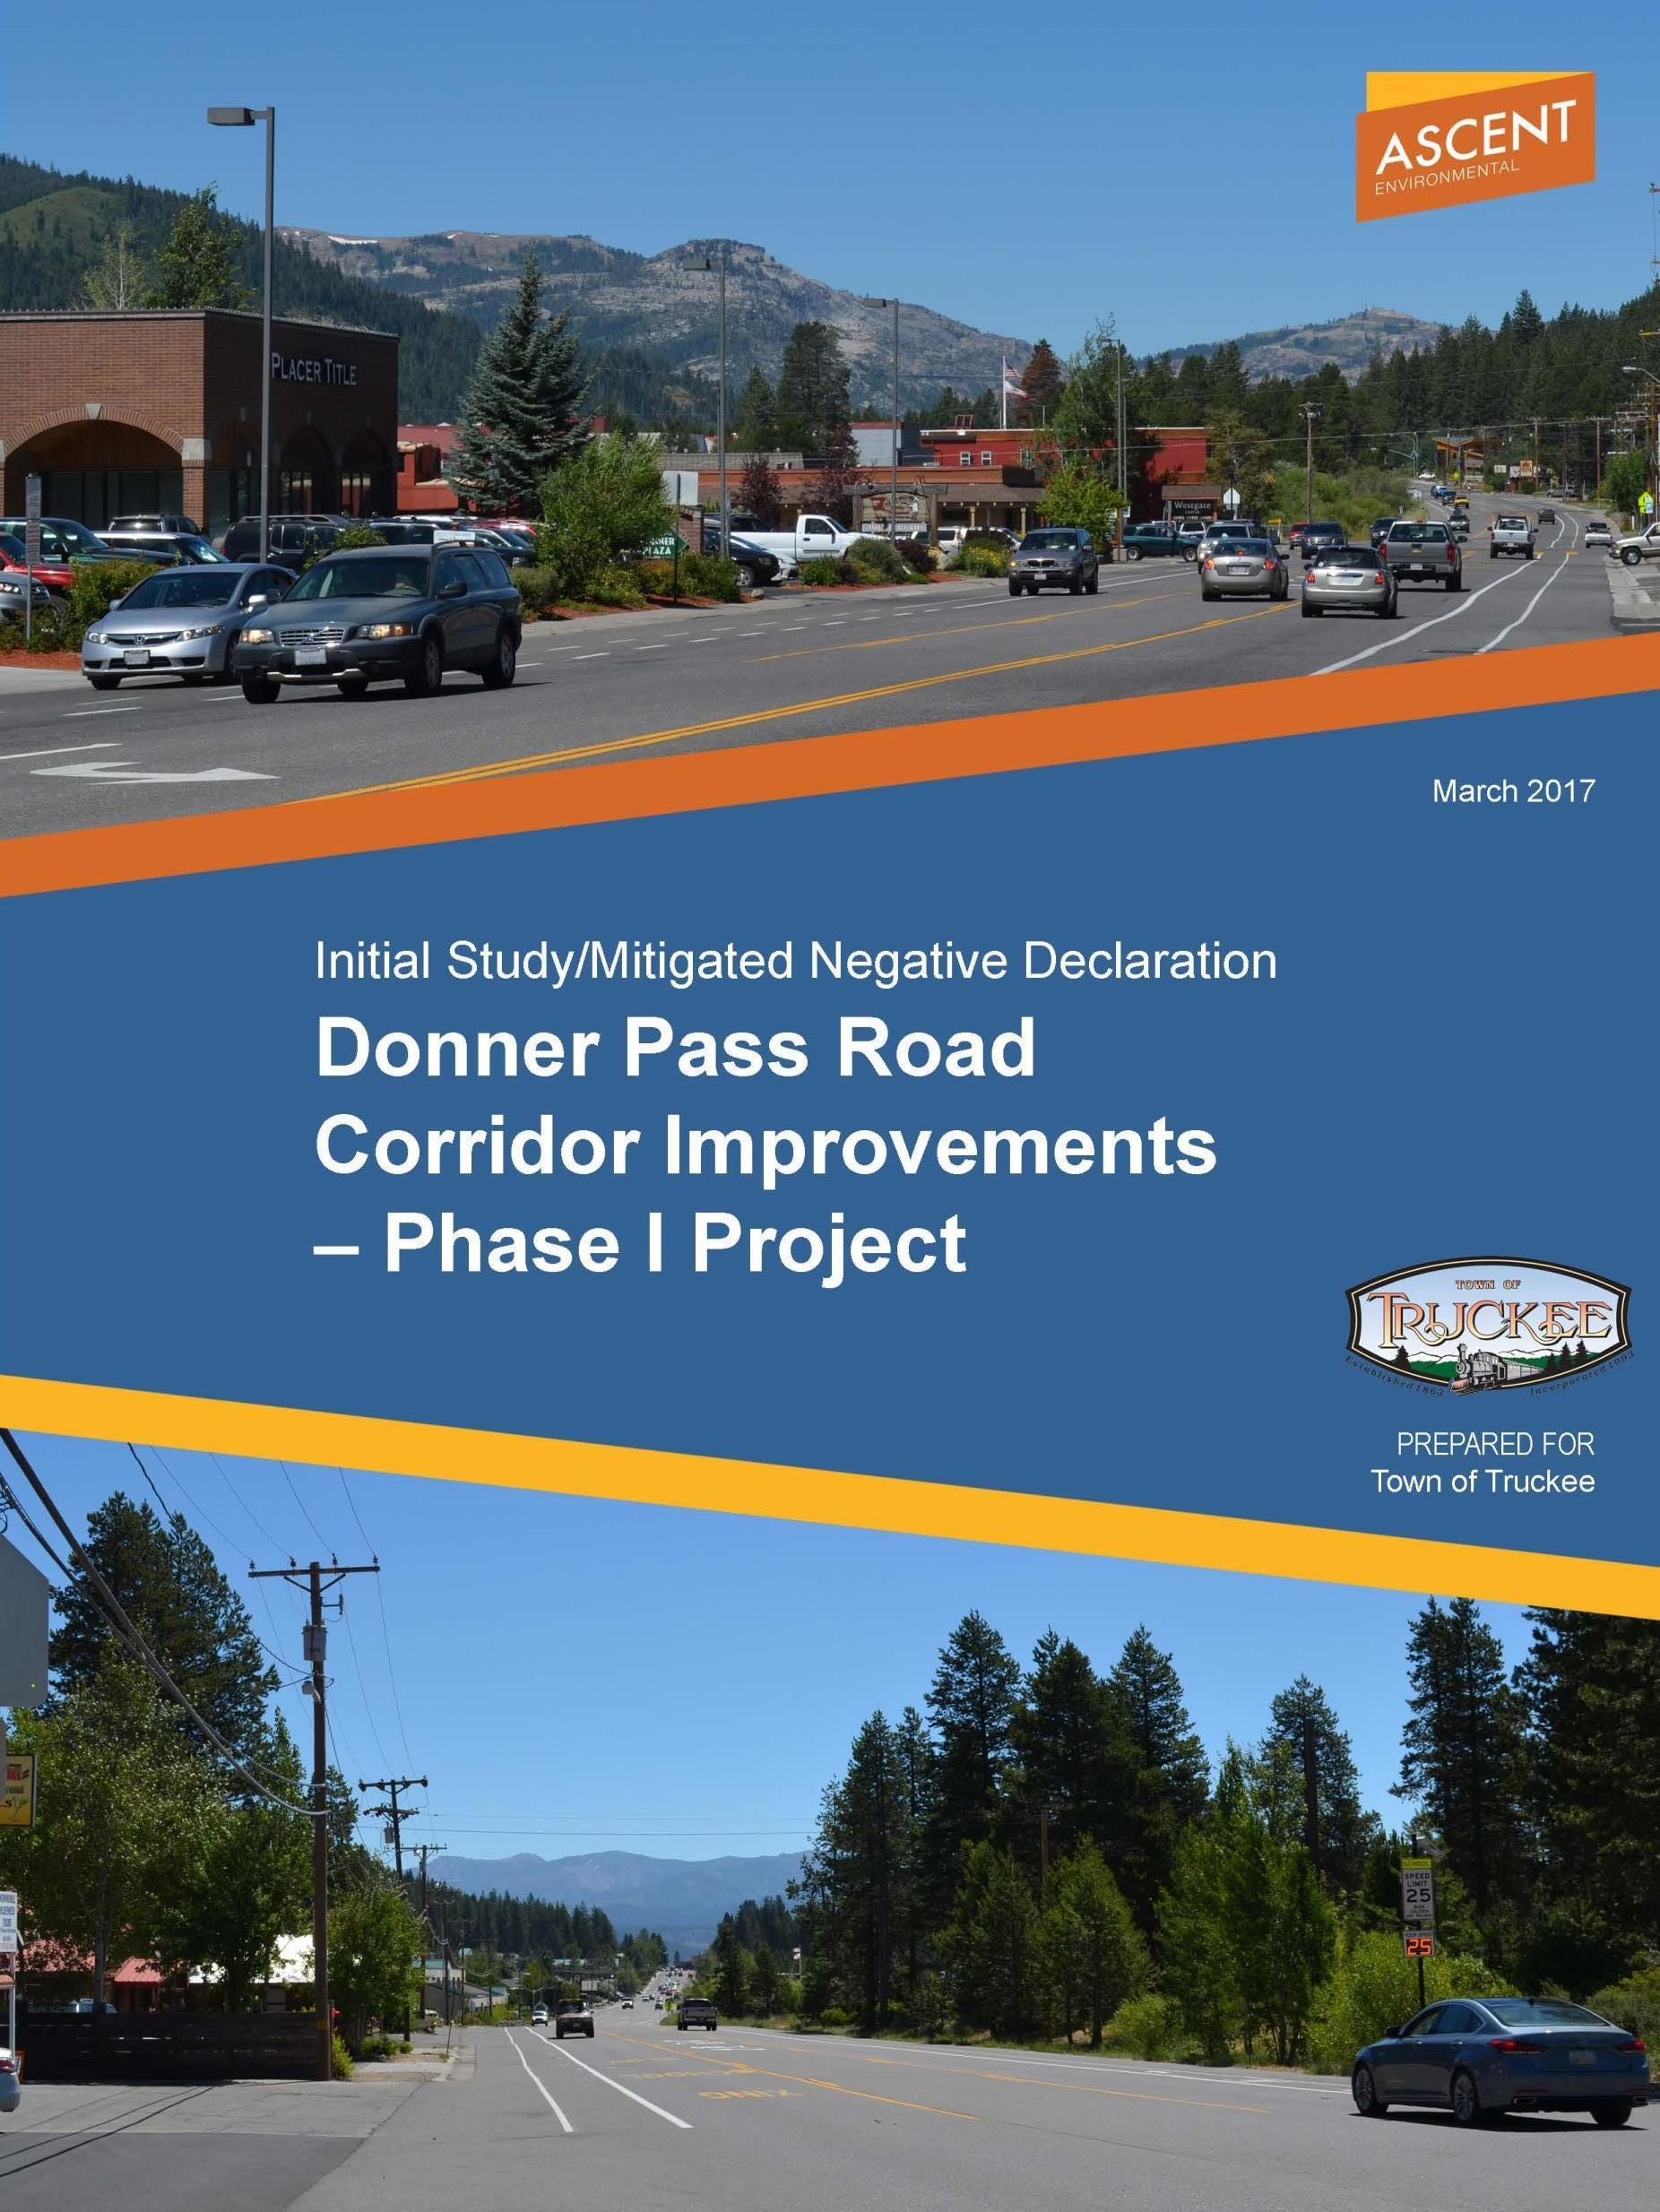 Envision Donner Pass Road Mitigated Negative Delcaration